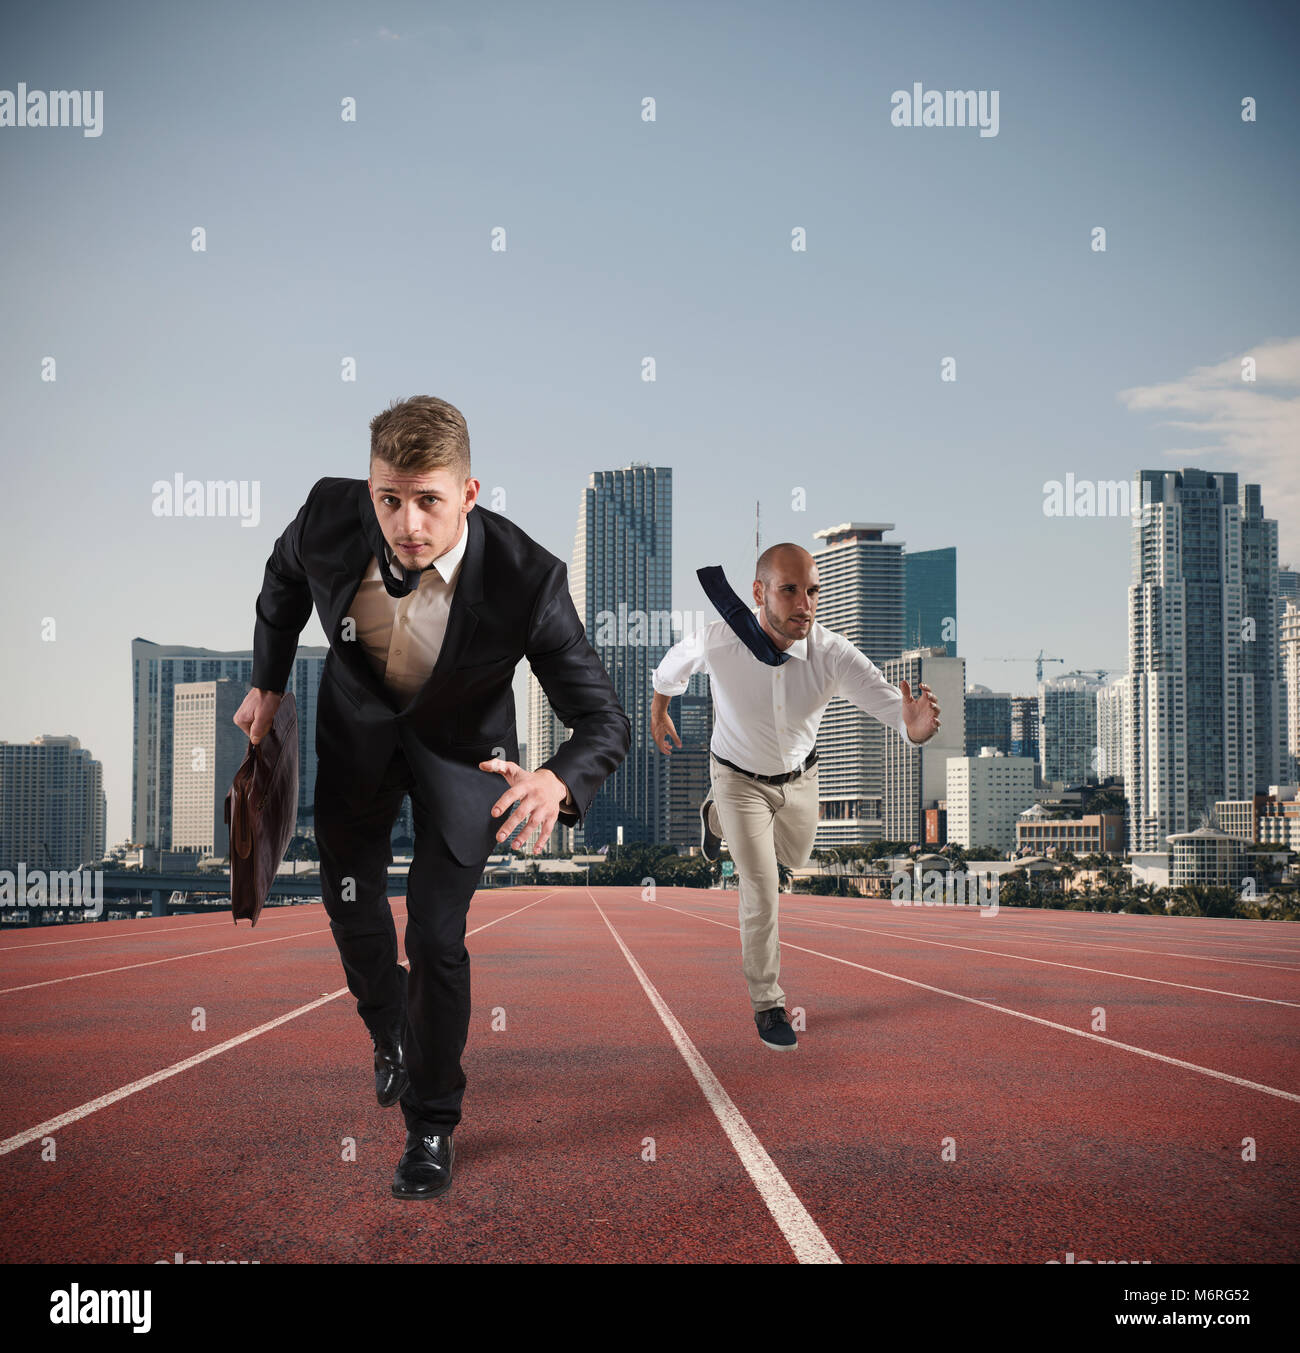 Businessman acts like a runner. Competition and challenge in business concept - Stock Image